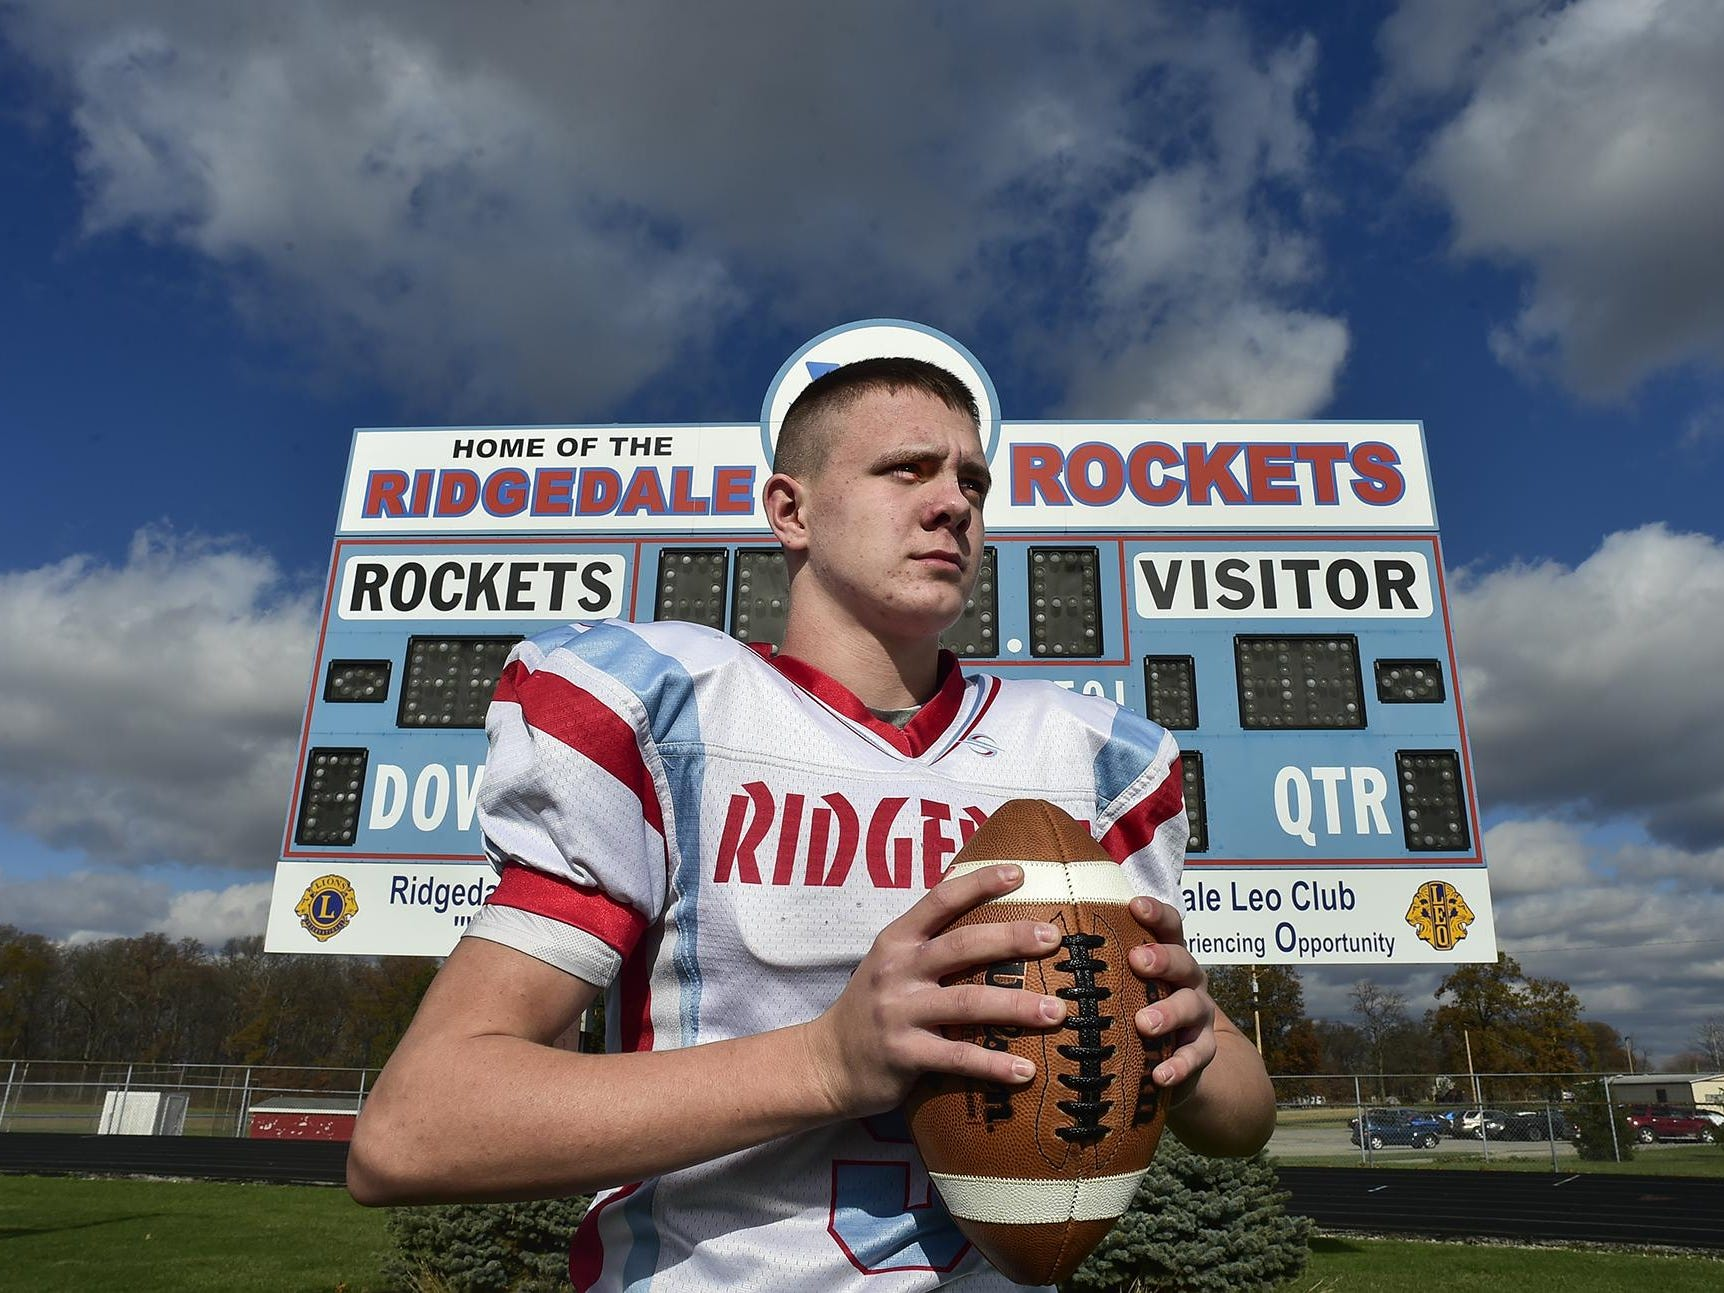 Male athlete of the month Tyler Wren, from Ridgedale, poses for a portrait on the Ridgedale football field.